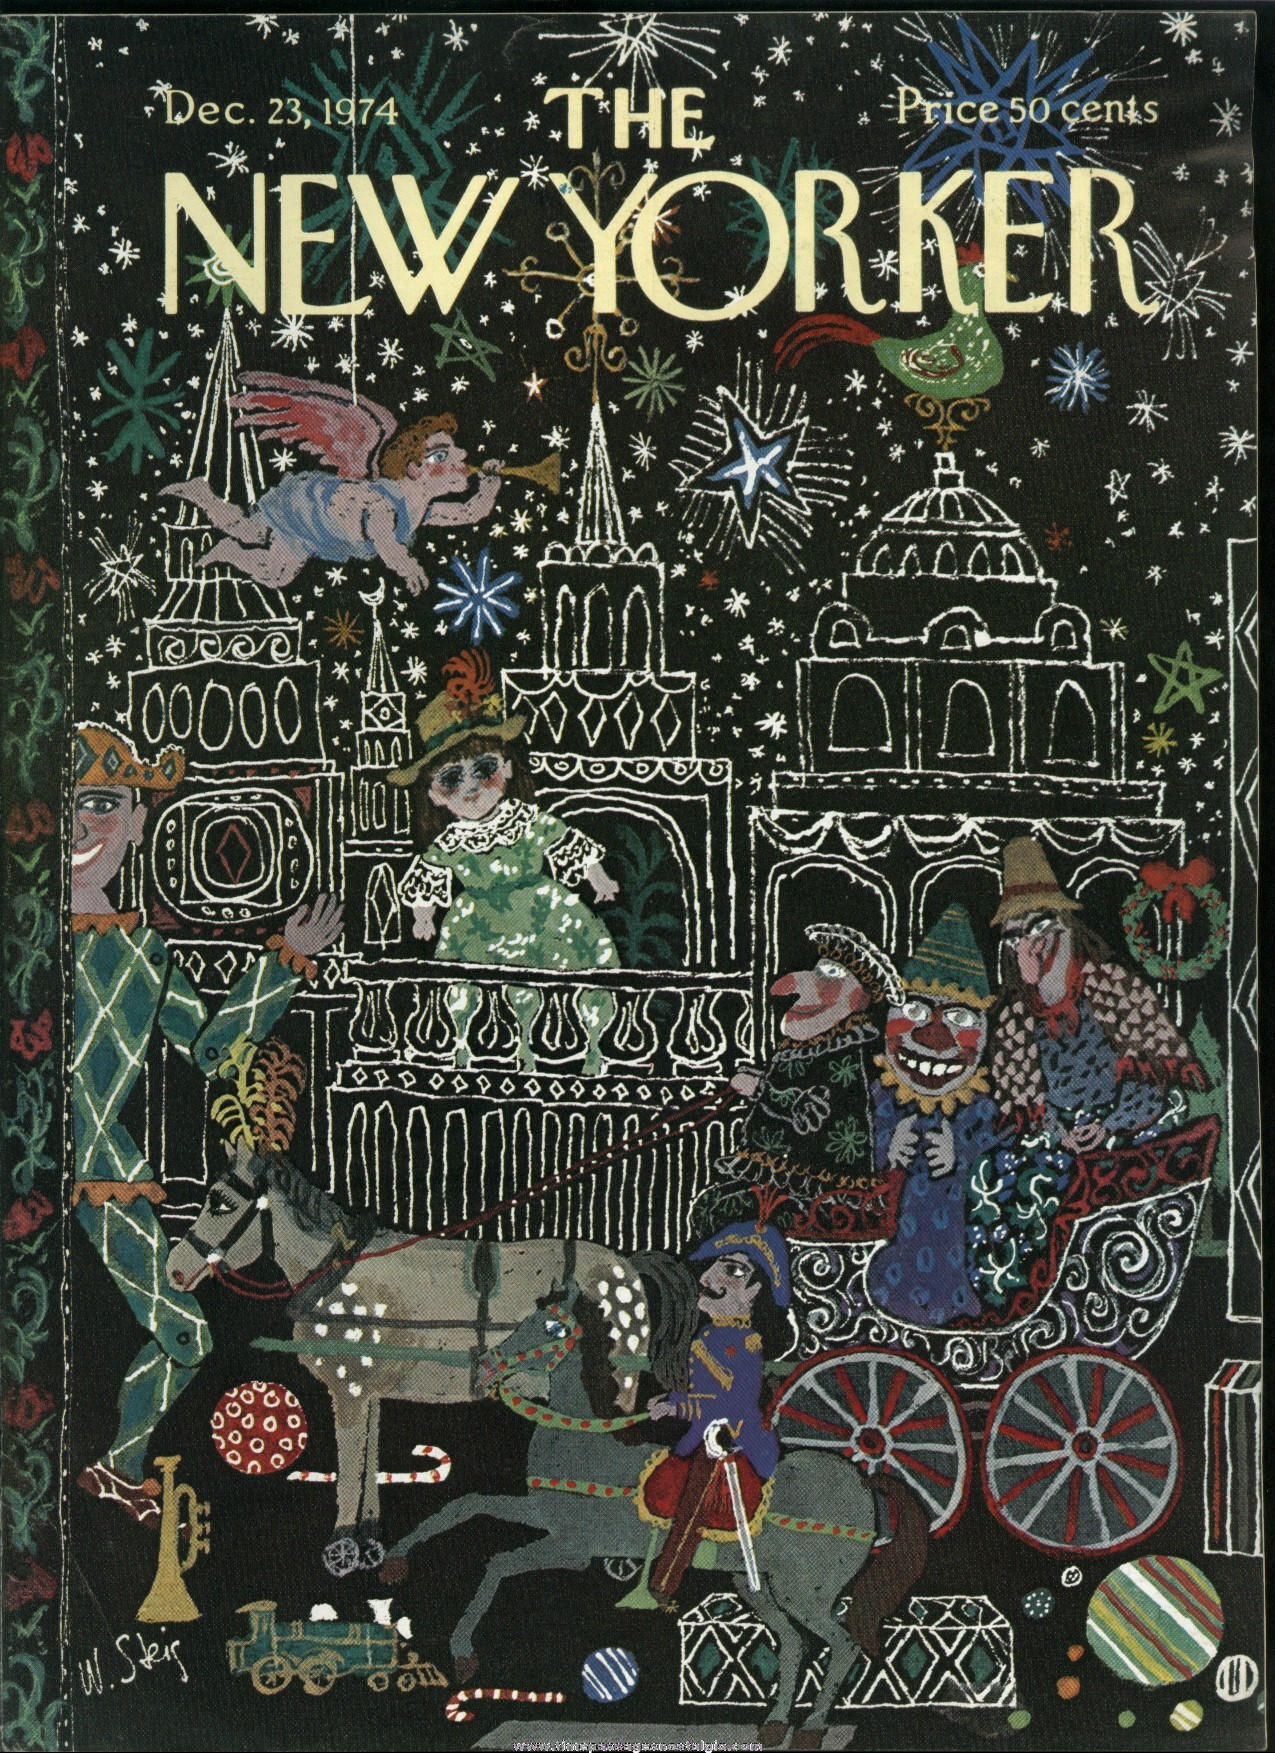 New Yorker Magazine - December 23, 1974 - Cover by William Steig